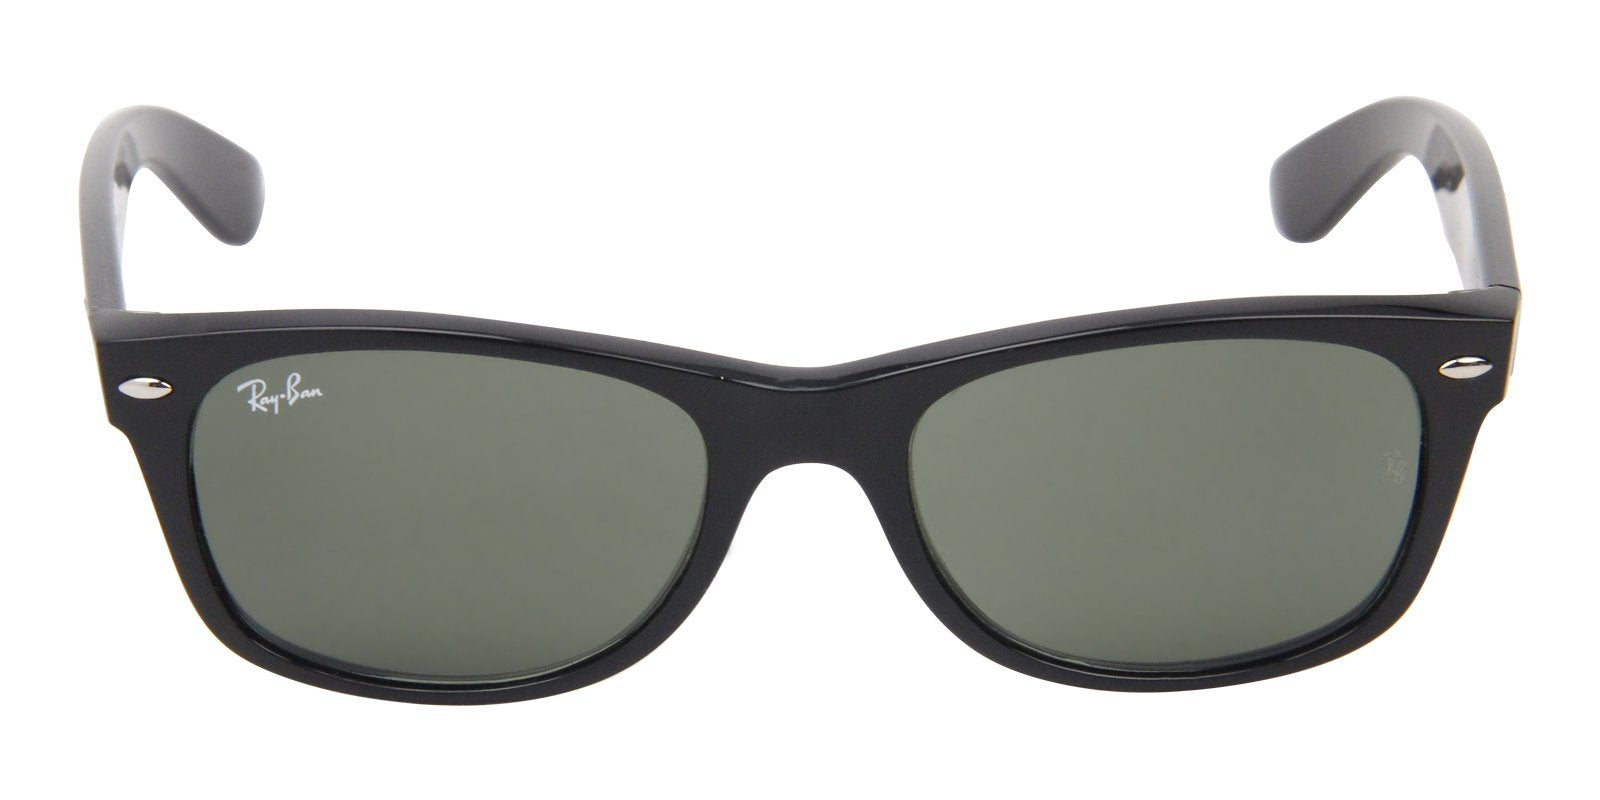 Ray Ban - New Wayfarer Black Wayfarer Unisex Sunglasses - 51mm-Sunglasses-Designer Eyes